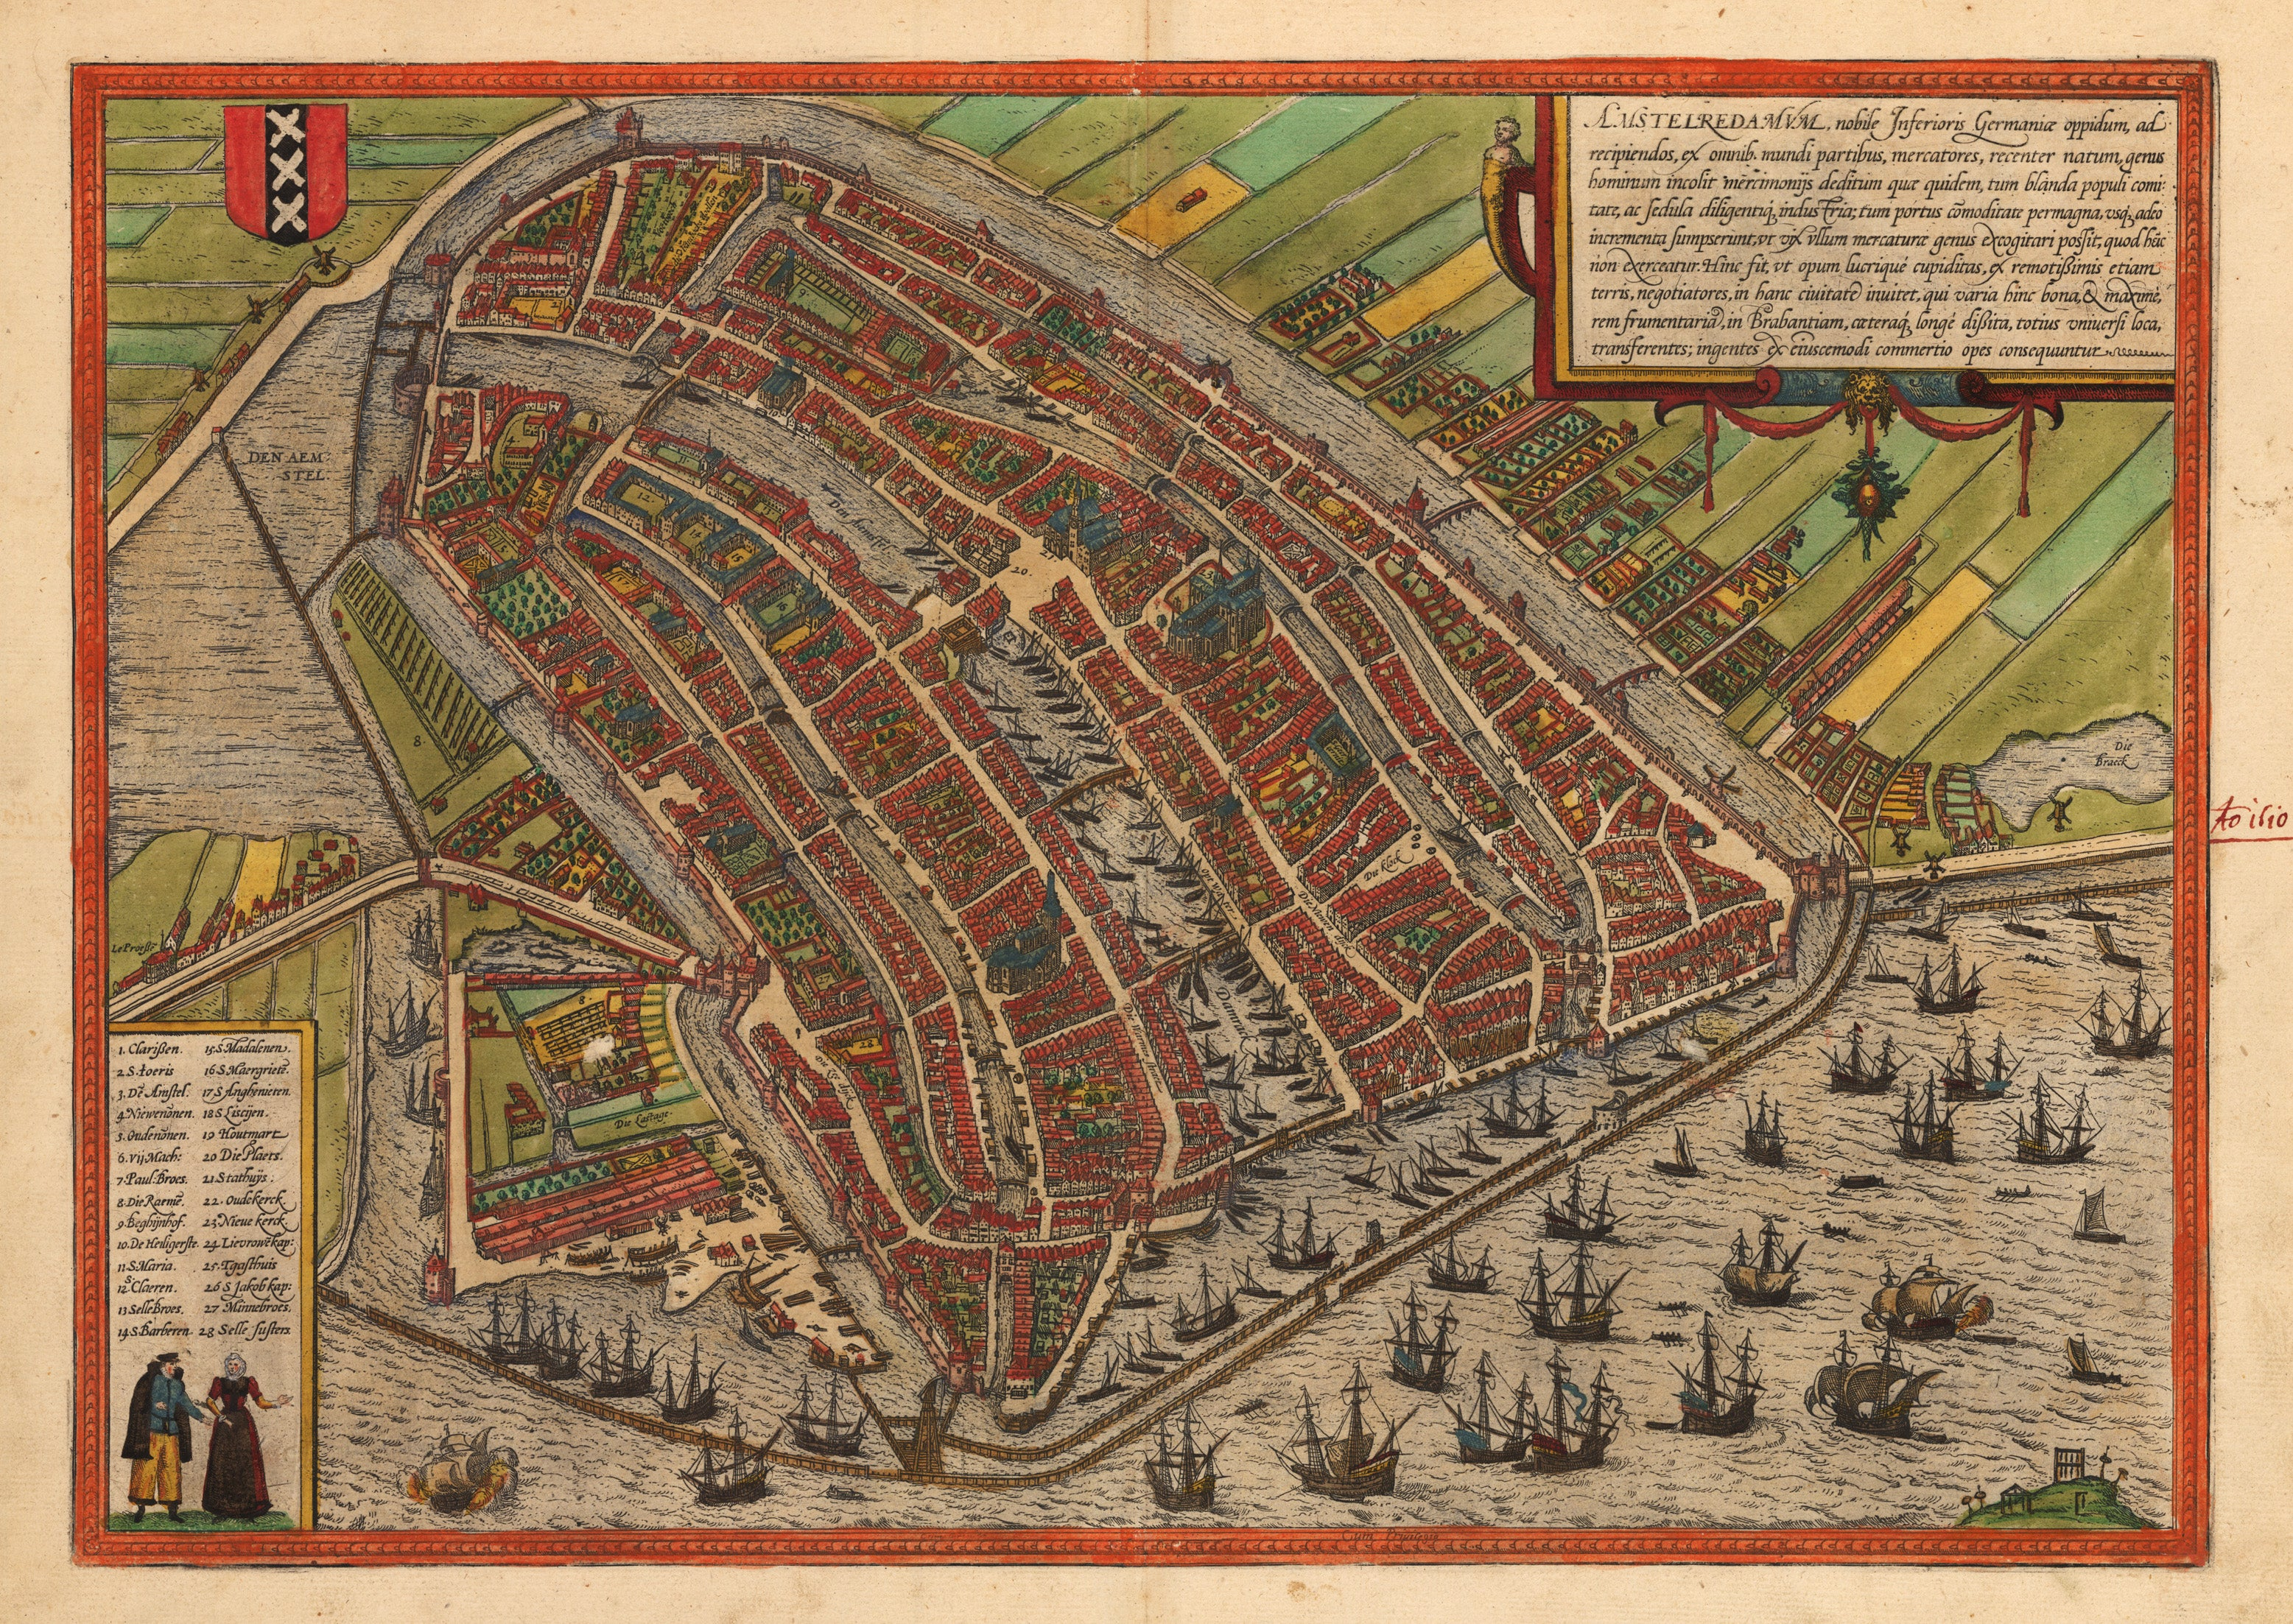 Amsterdam. By Braun & Hogenberg 1574 - nwcartographic.com